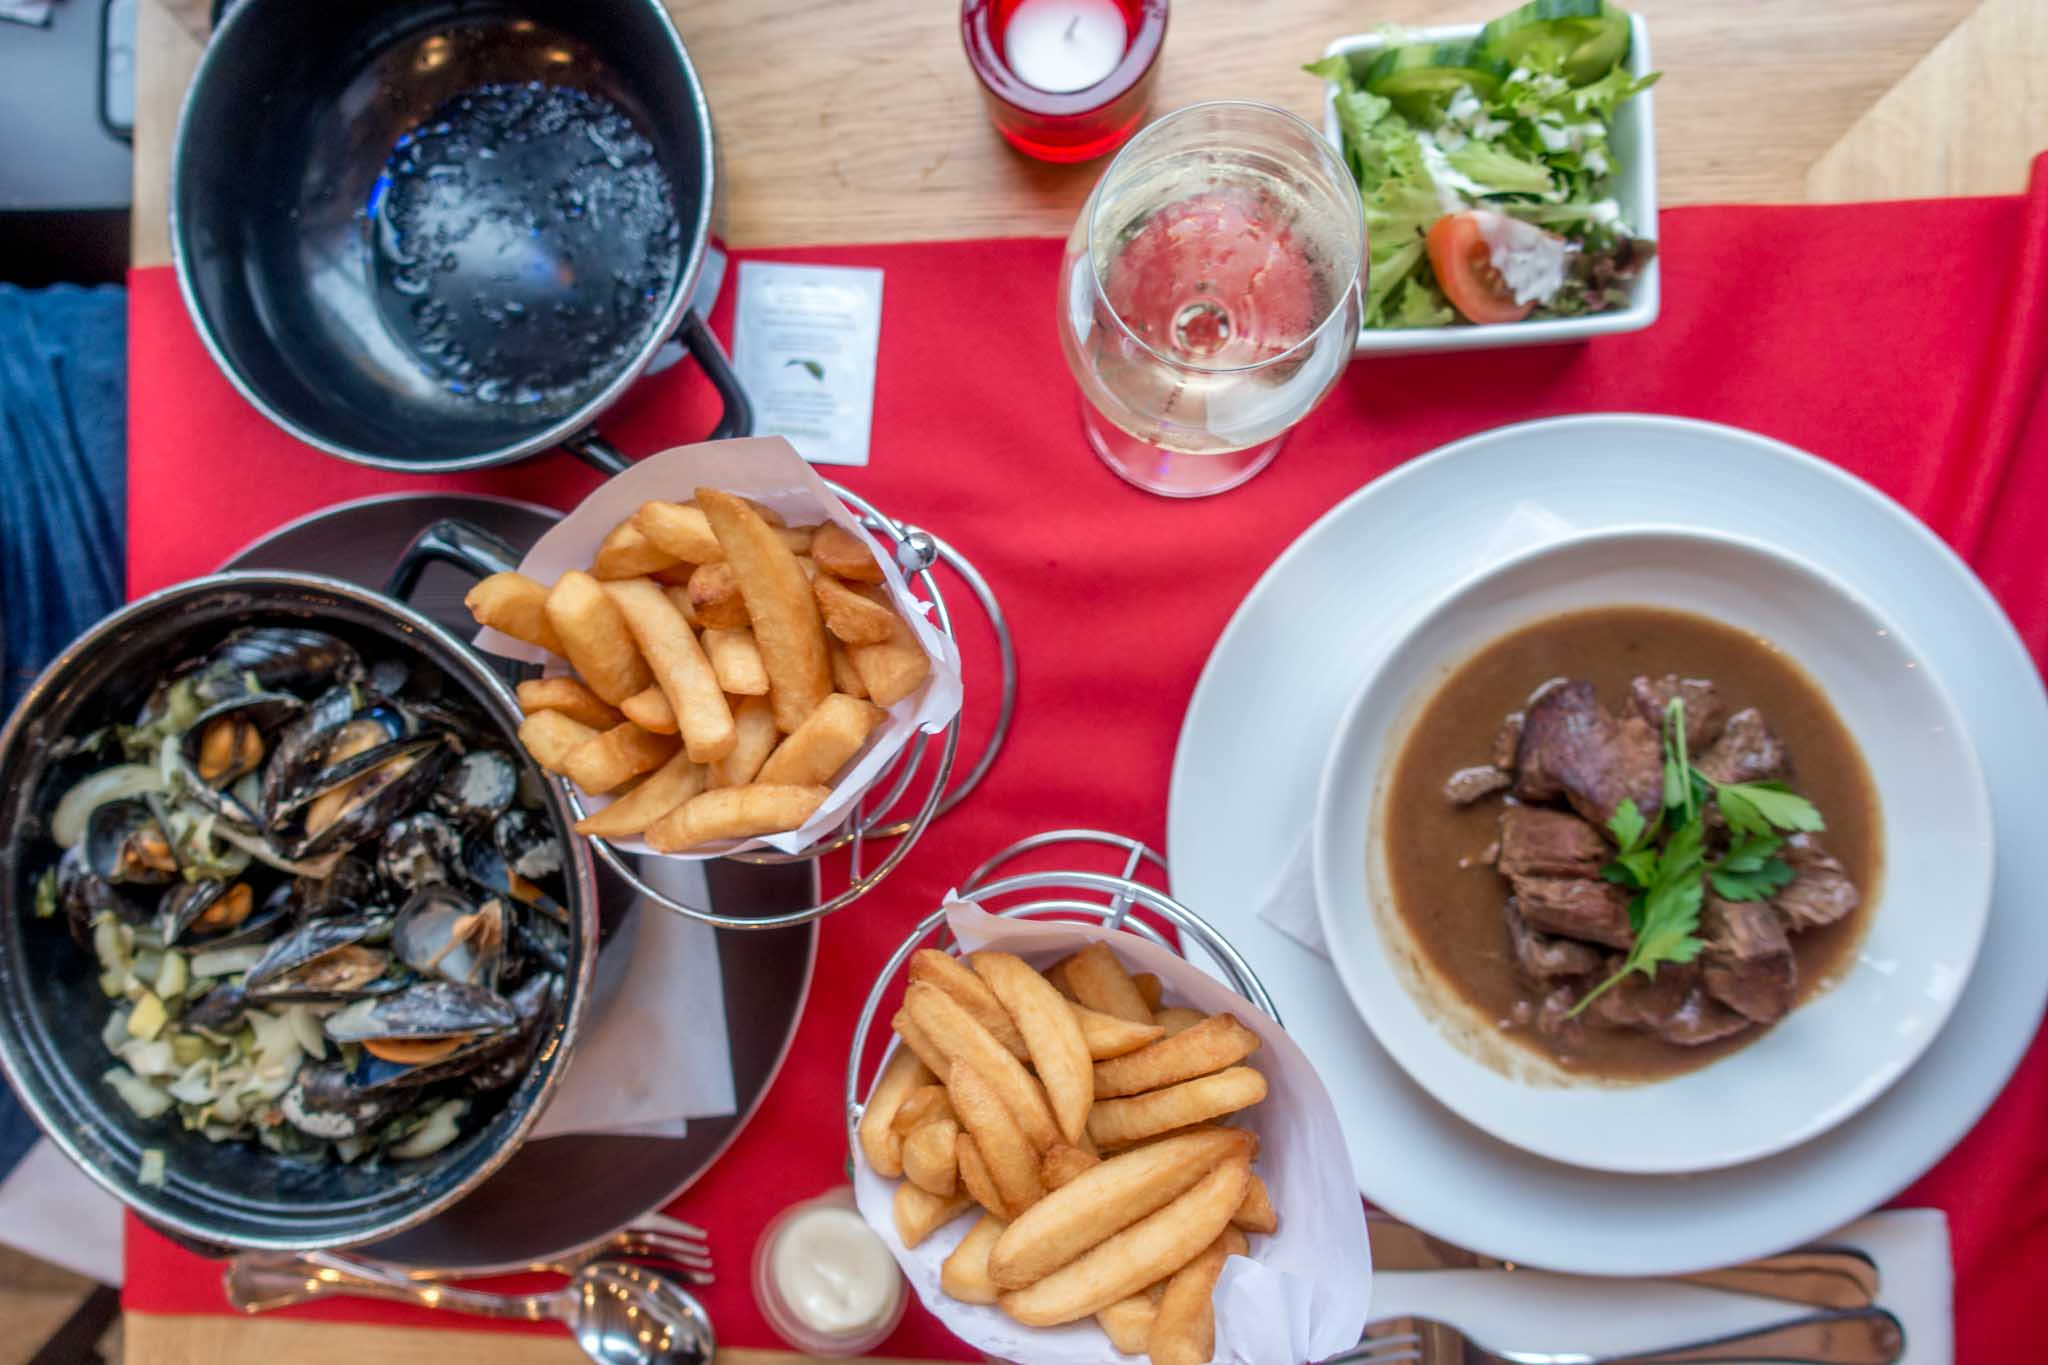 Frites, mussels, and other Belgian food on table